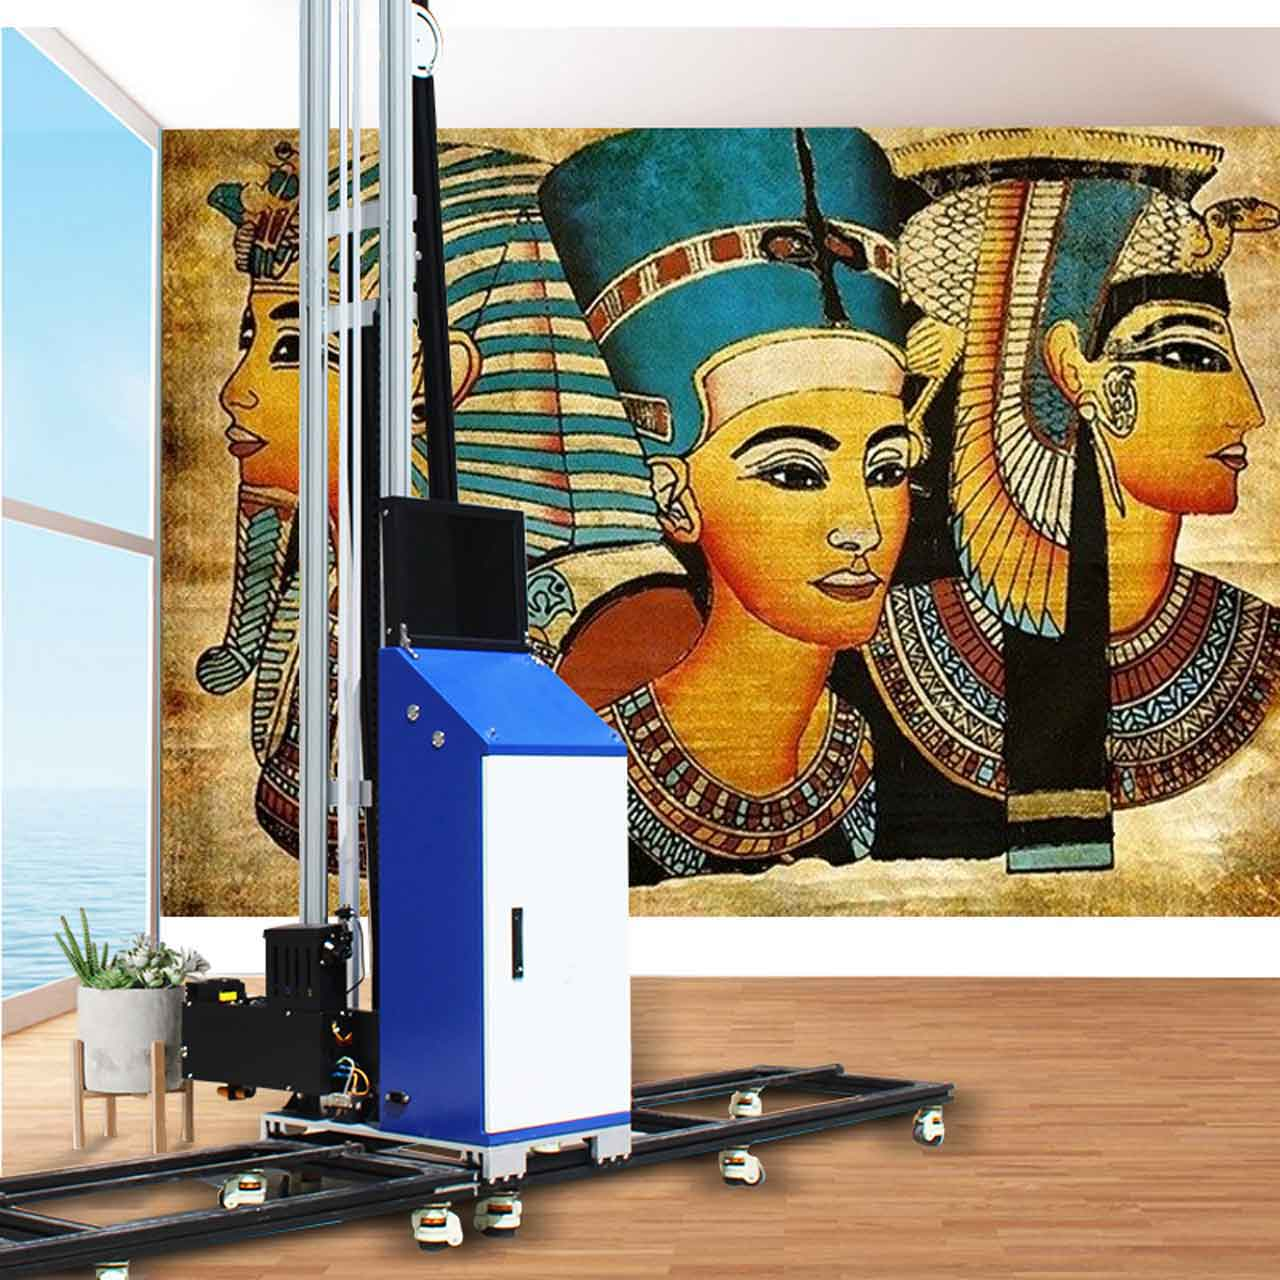 Art-Painting-UV-Wall-Printing-Machine